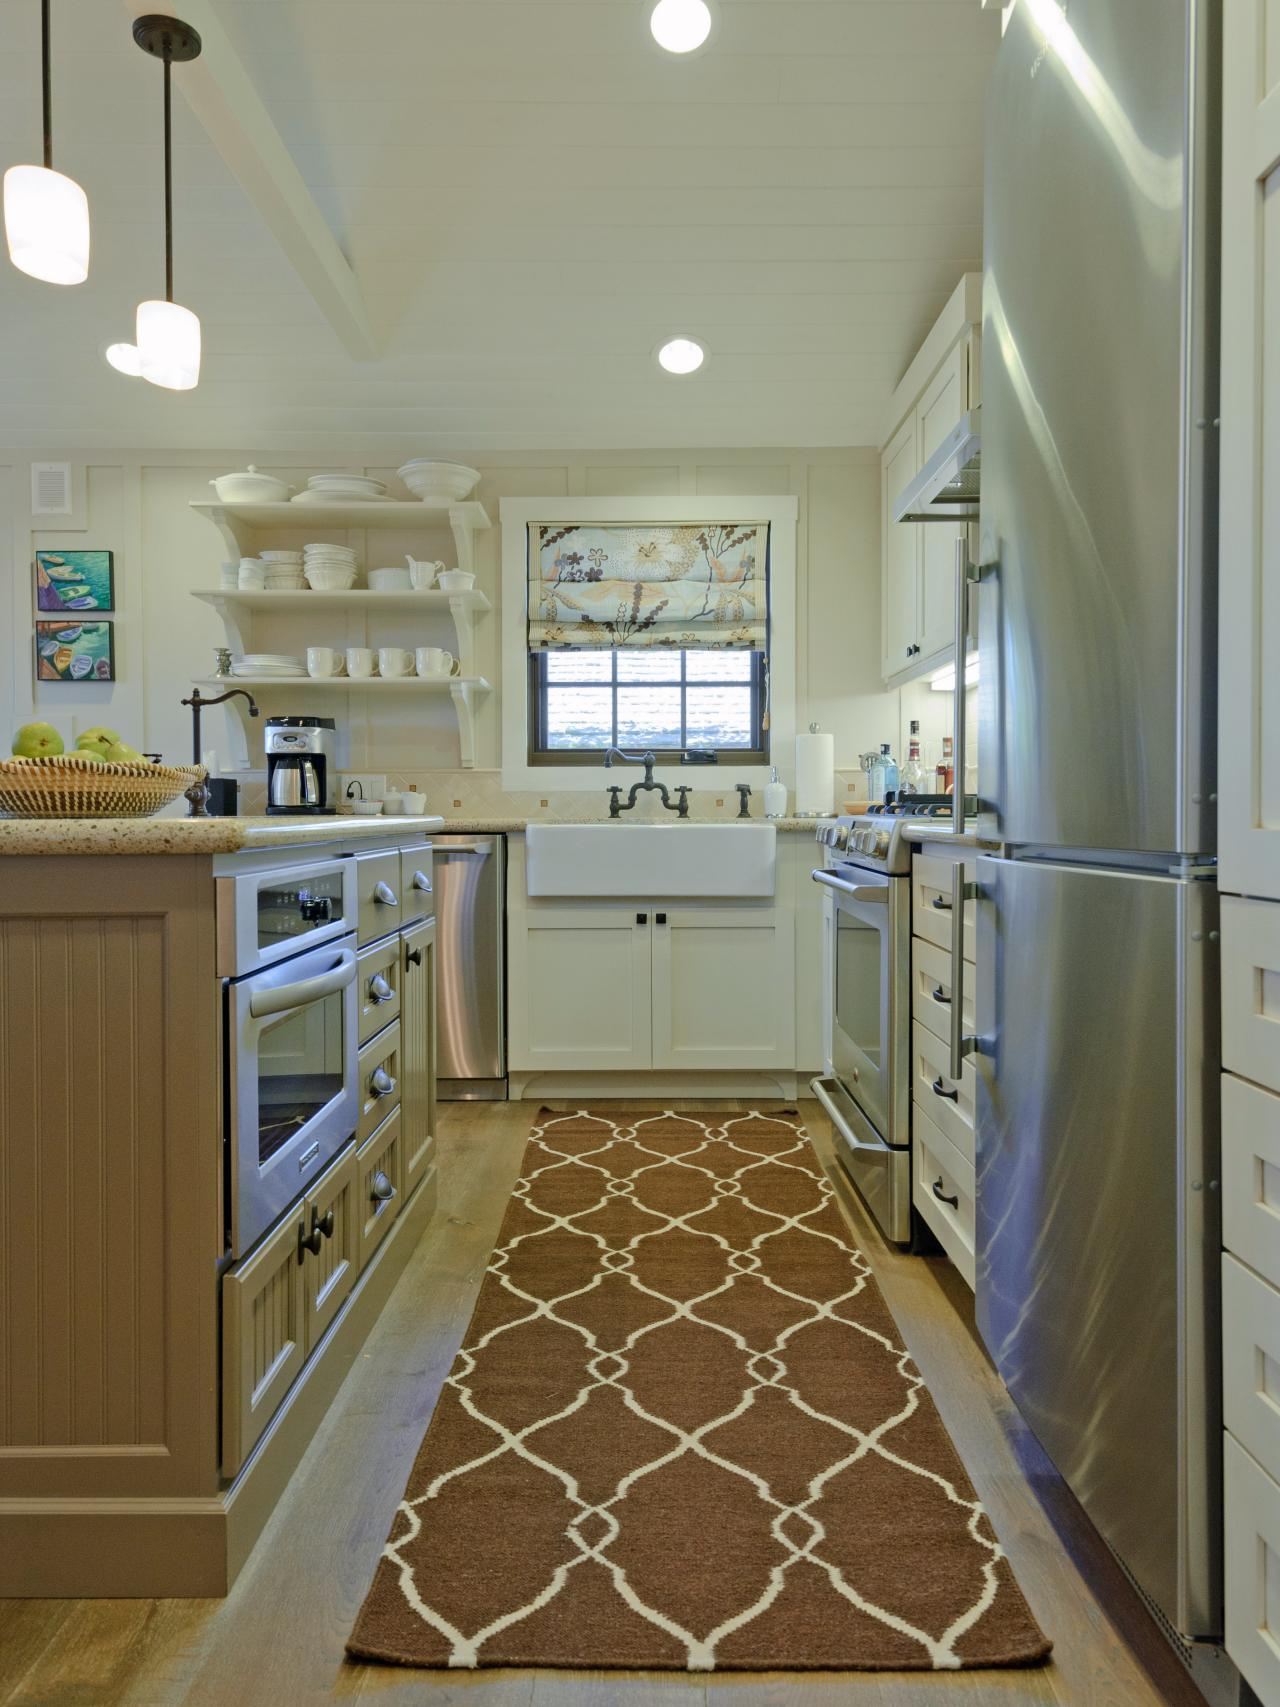 Coastal Kitchen With Apron Front Sink And Patterned Rug Hgtv